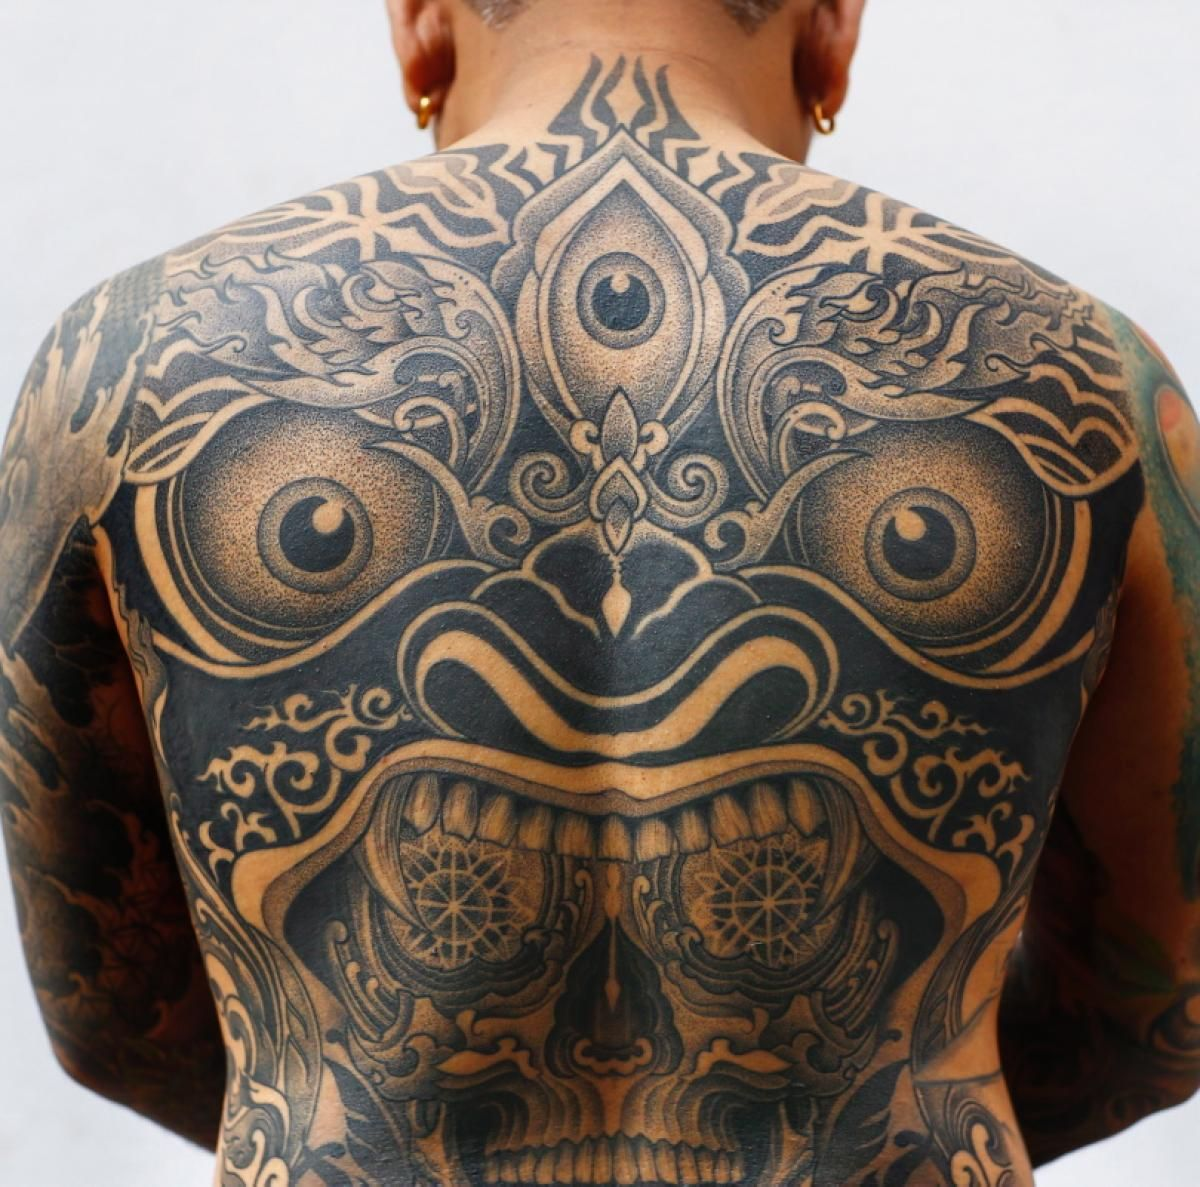 Tattoo Convention In Nepal Tattoos Nepal Tattoo Full Back Tattoos